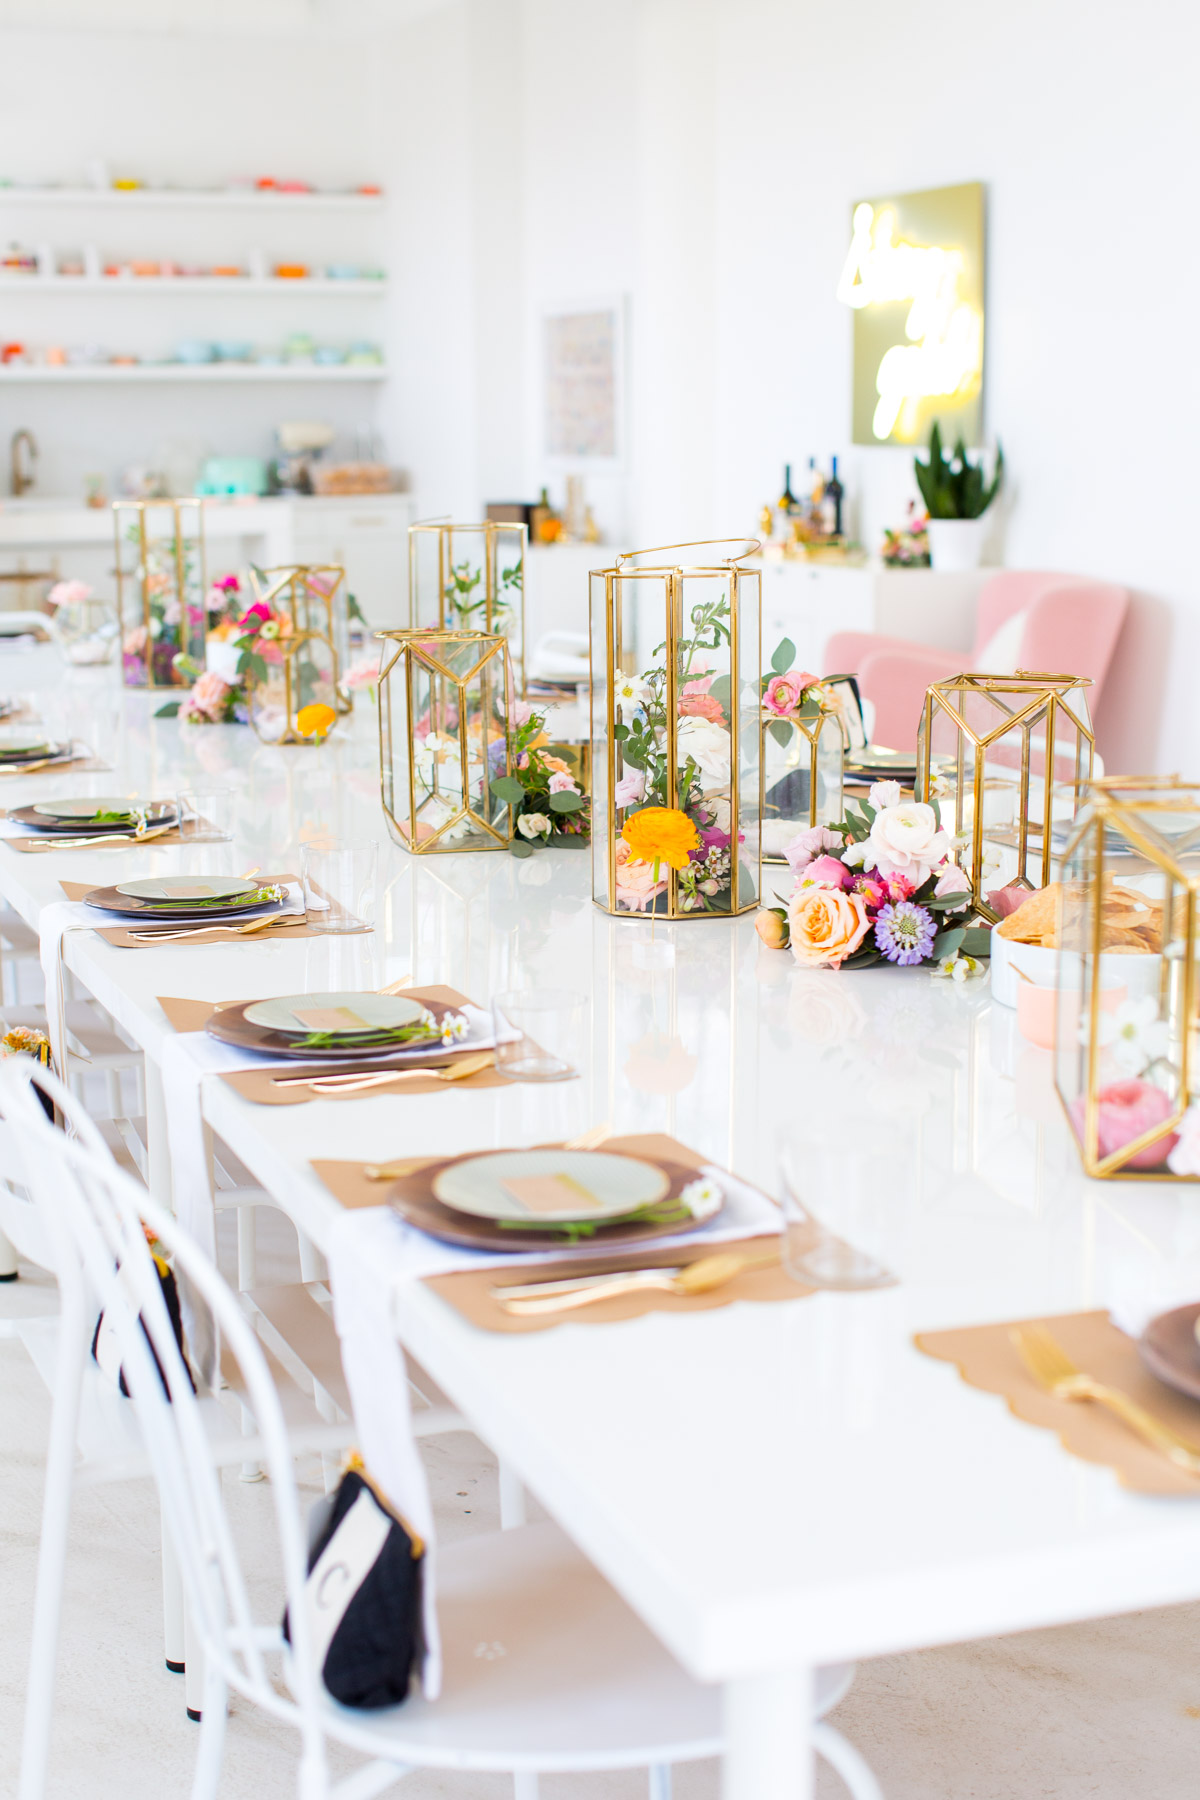 Astonishing 25 Bridal Shower Centerpieces The Bride To Be Will Love Home Interior And Landscaping Ologienasavecom